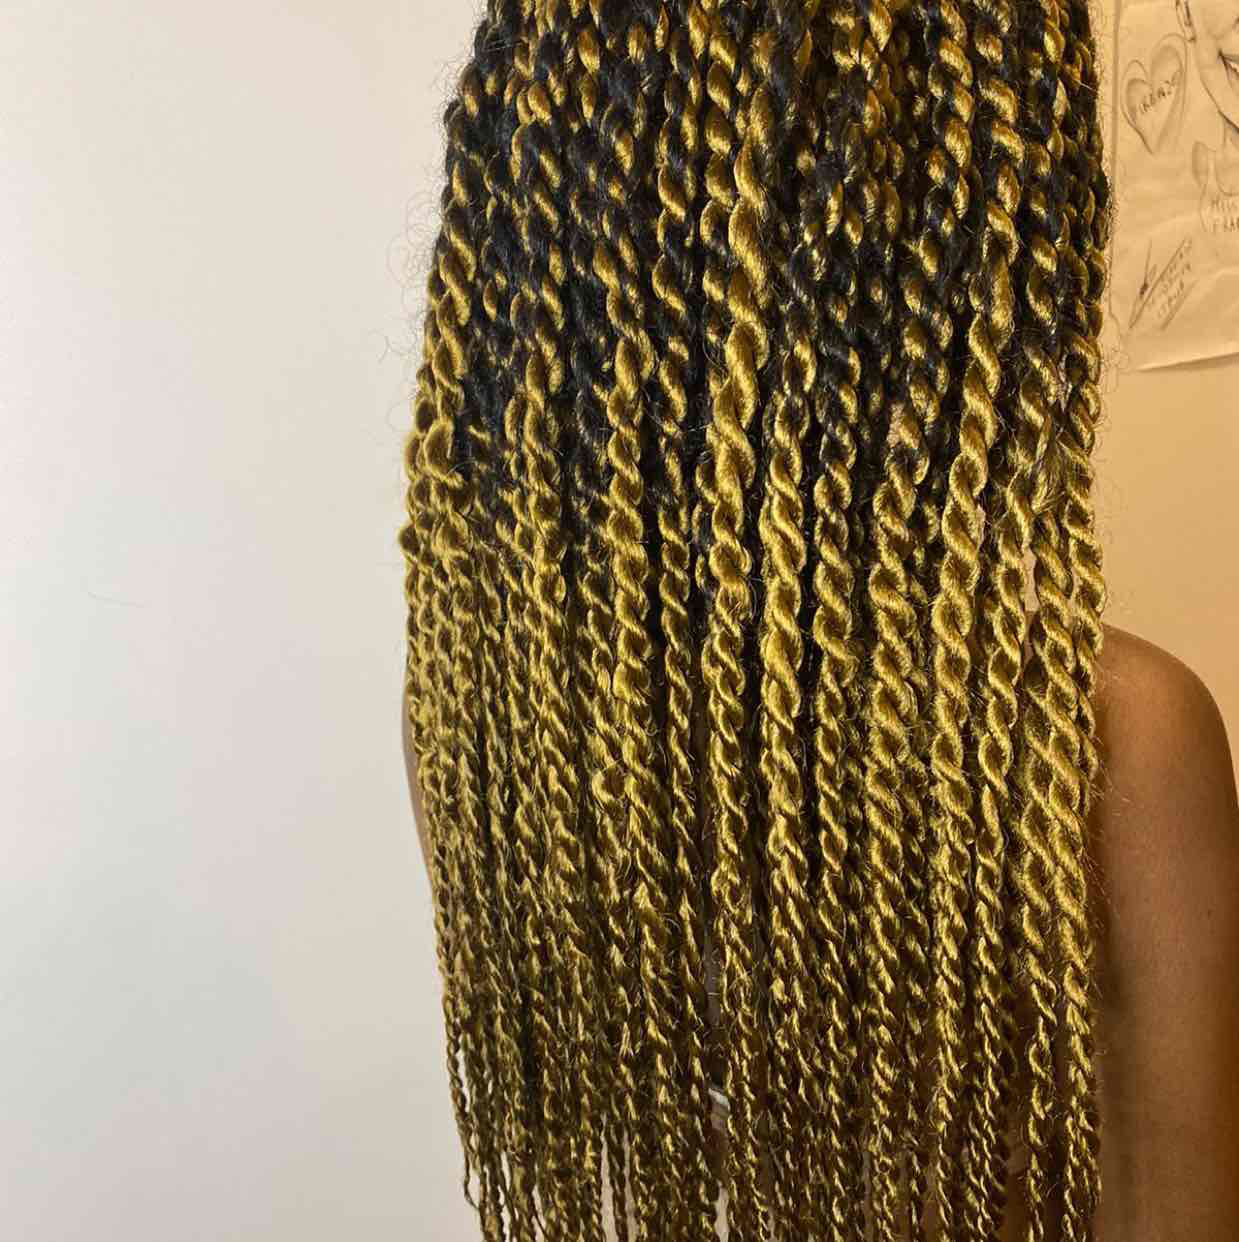 salon de coiffure afro tresse tresses box braids crochet braids vanilles tissages paris 75 77 78 91 92 93 94 95 IDEWKPEP